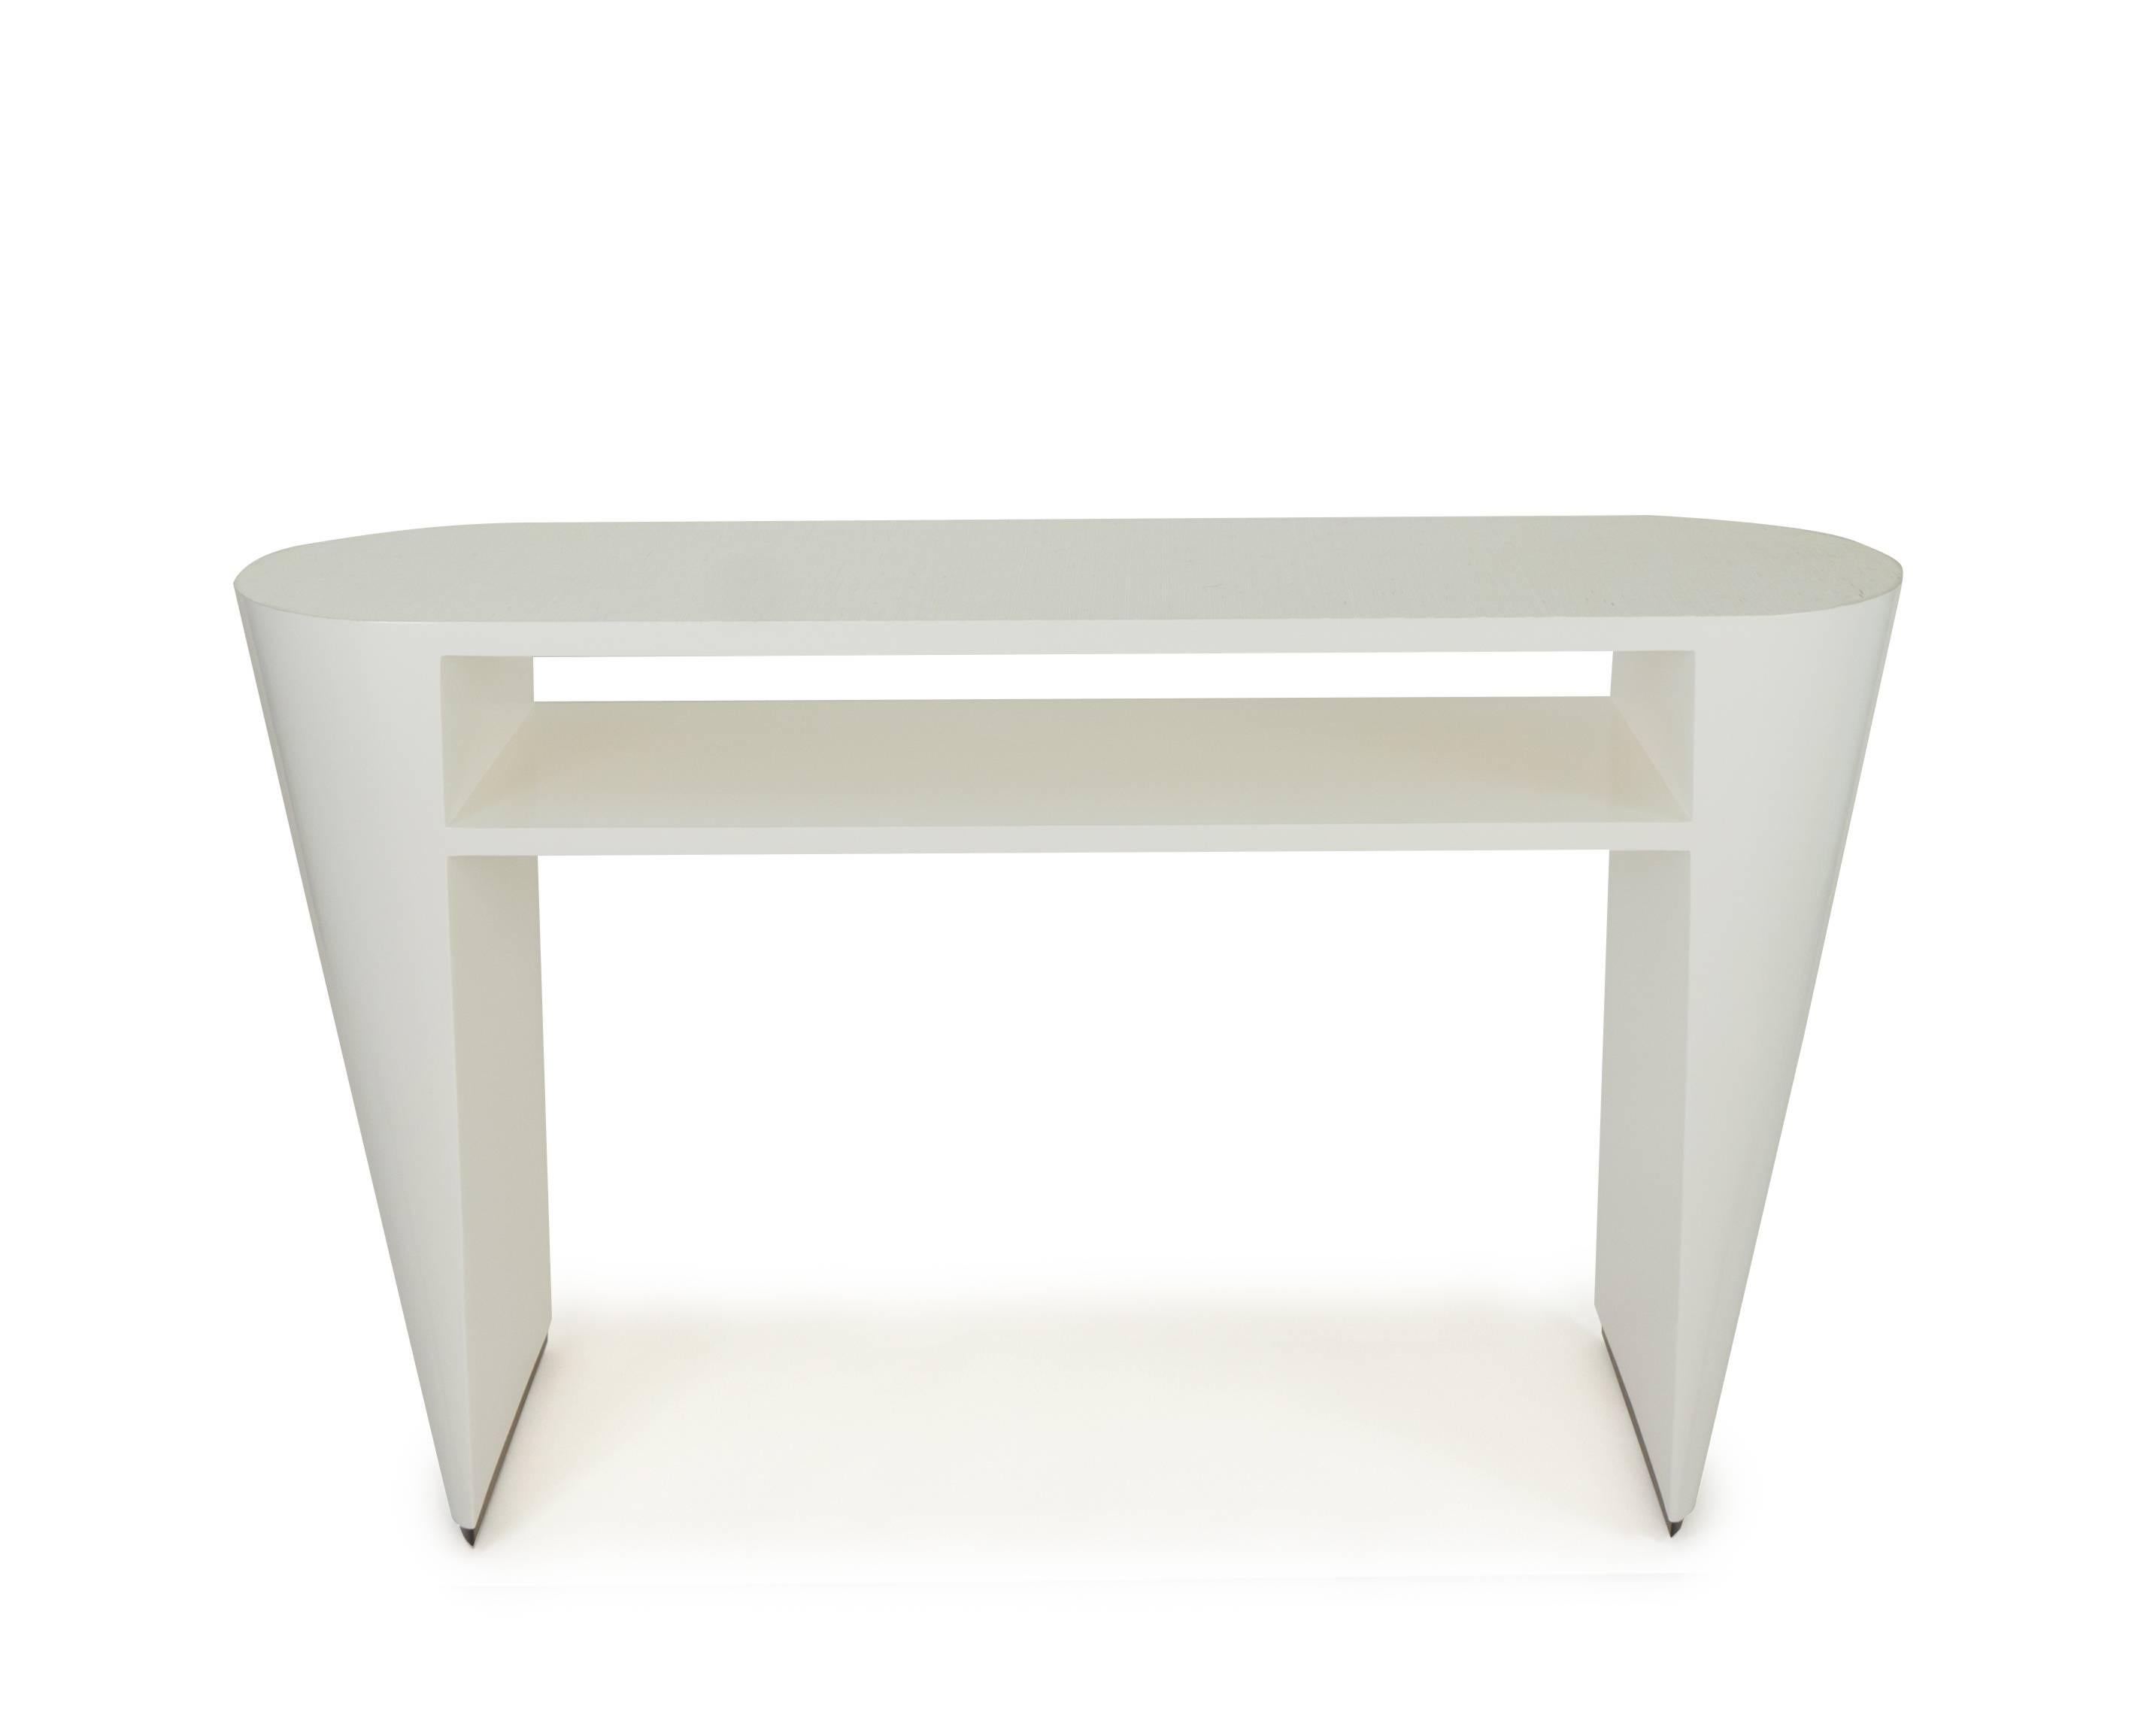 Art Deco White Lacquered Console Table With Grcloth Top For At 1stdibs